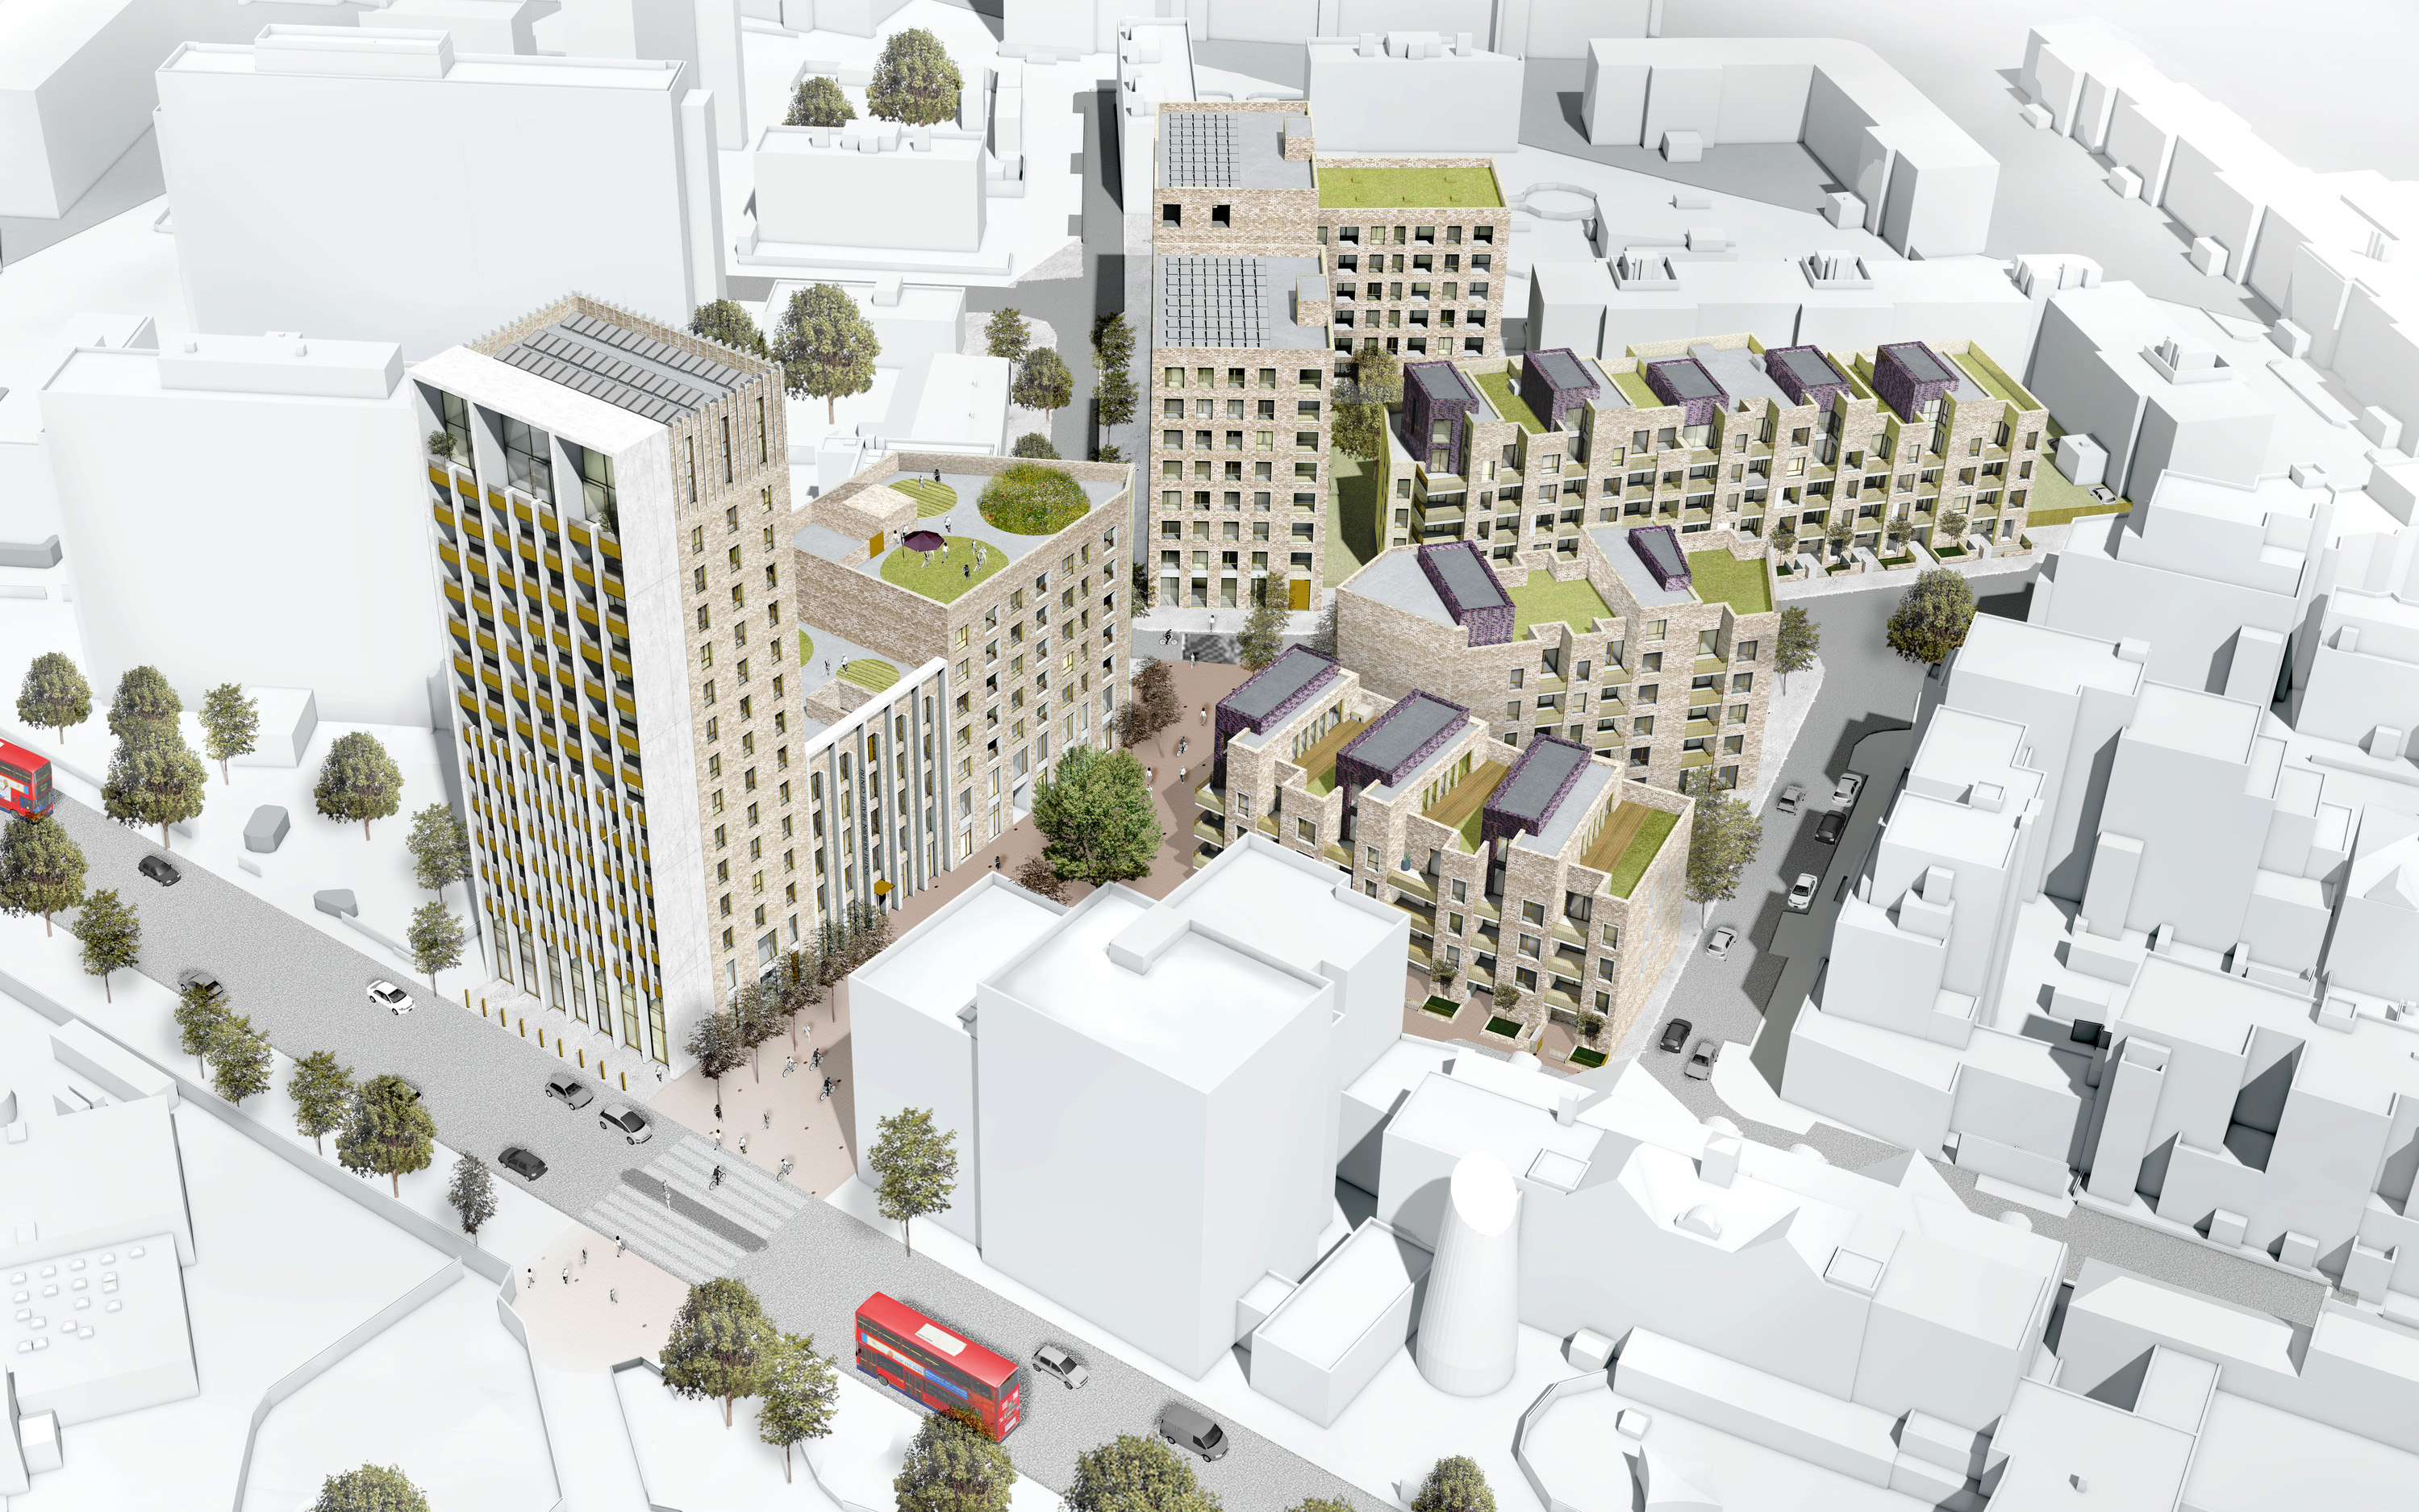 The Peel Project Mixed Use Development & Masterplan